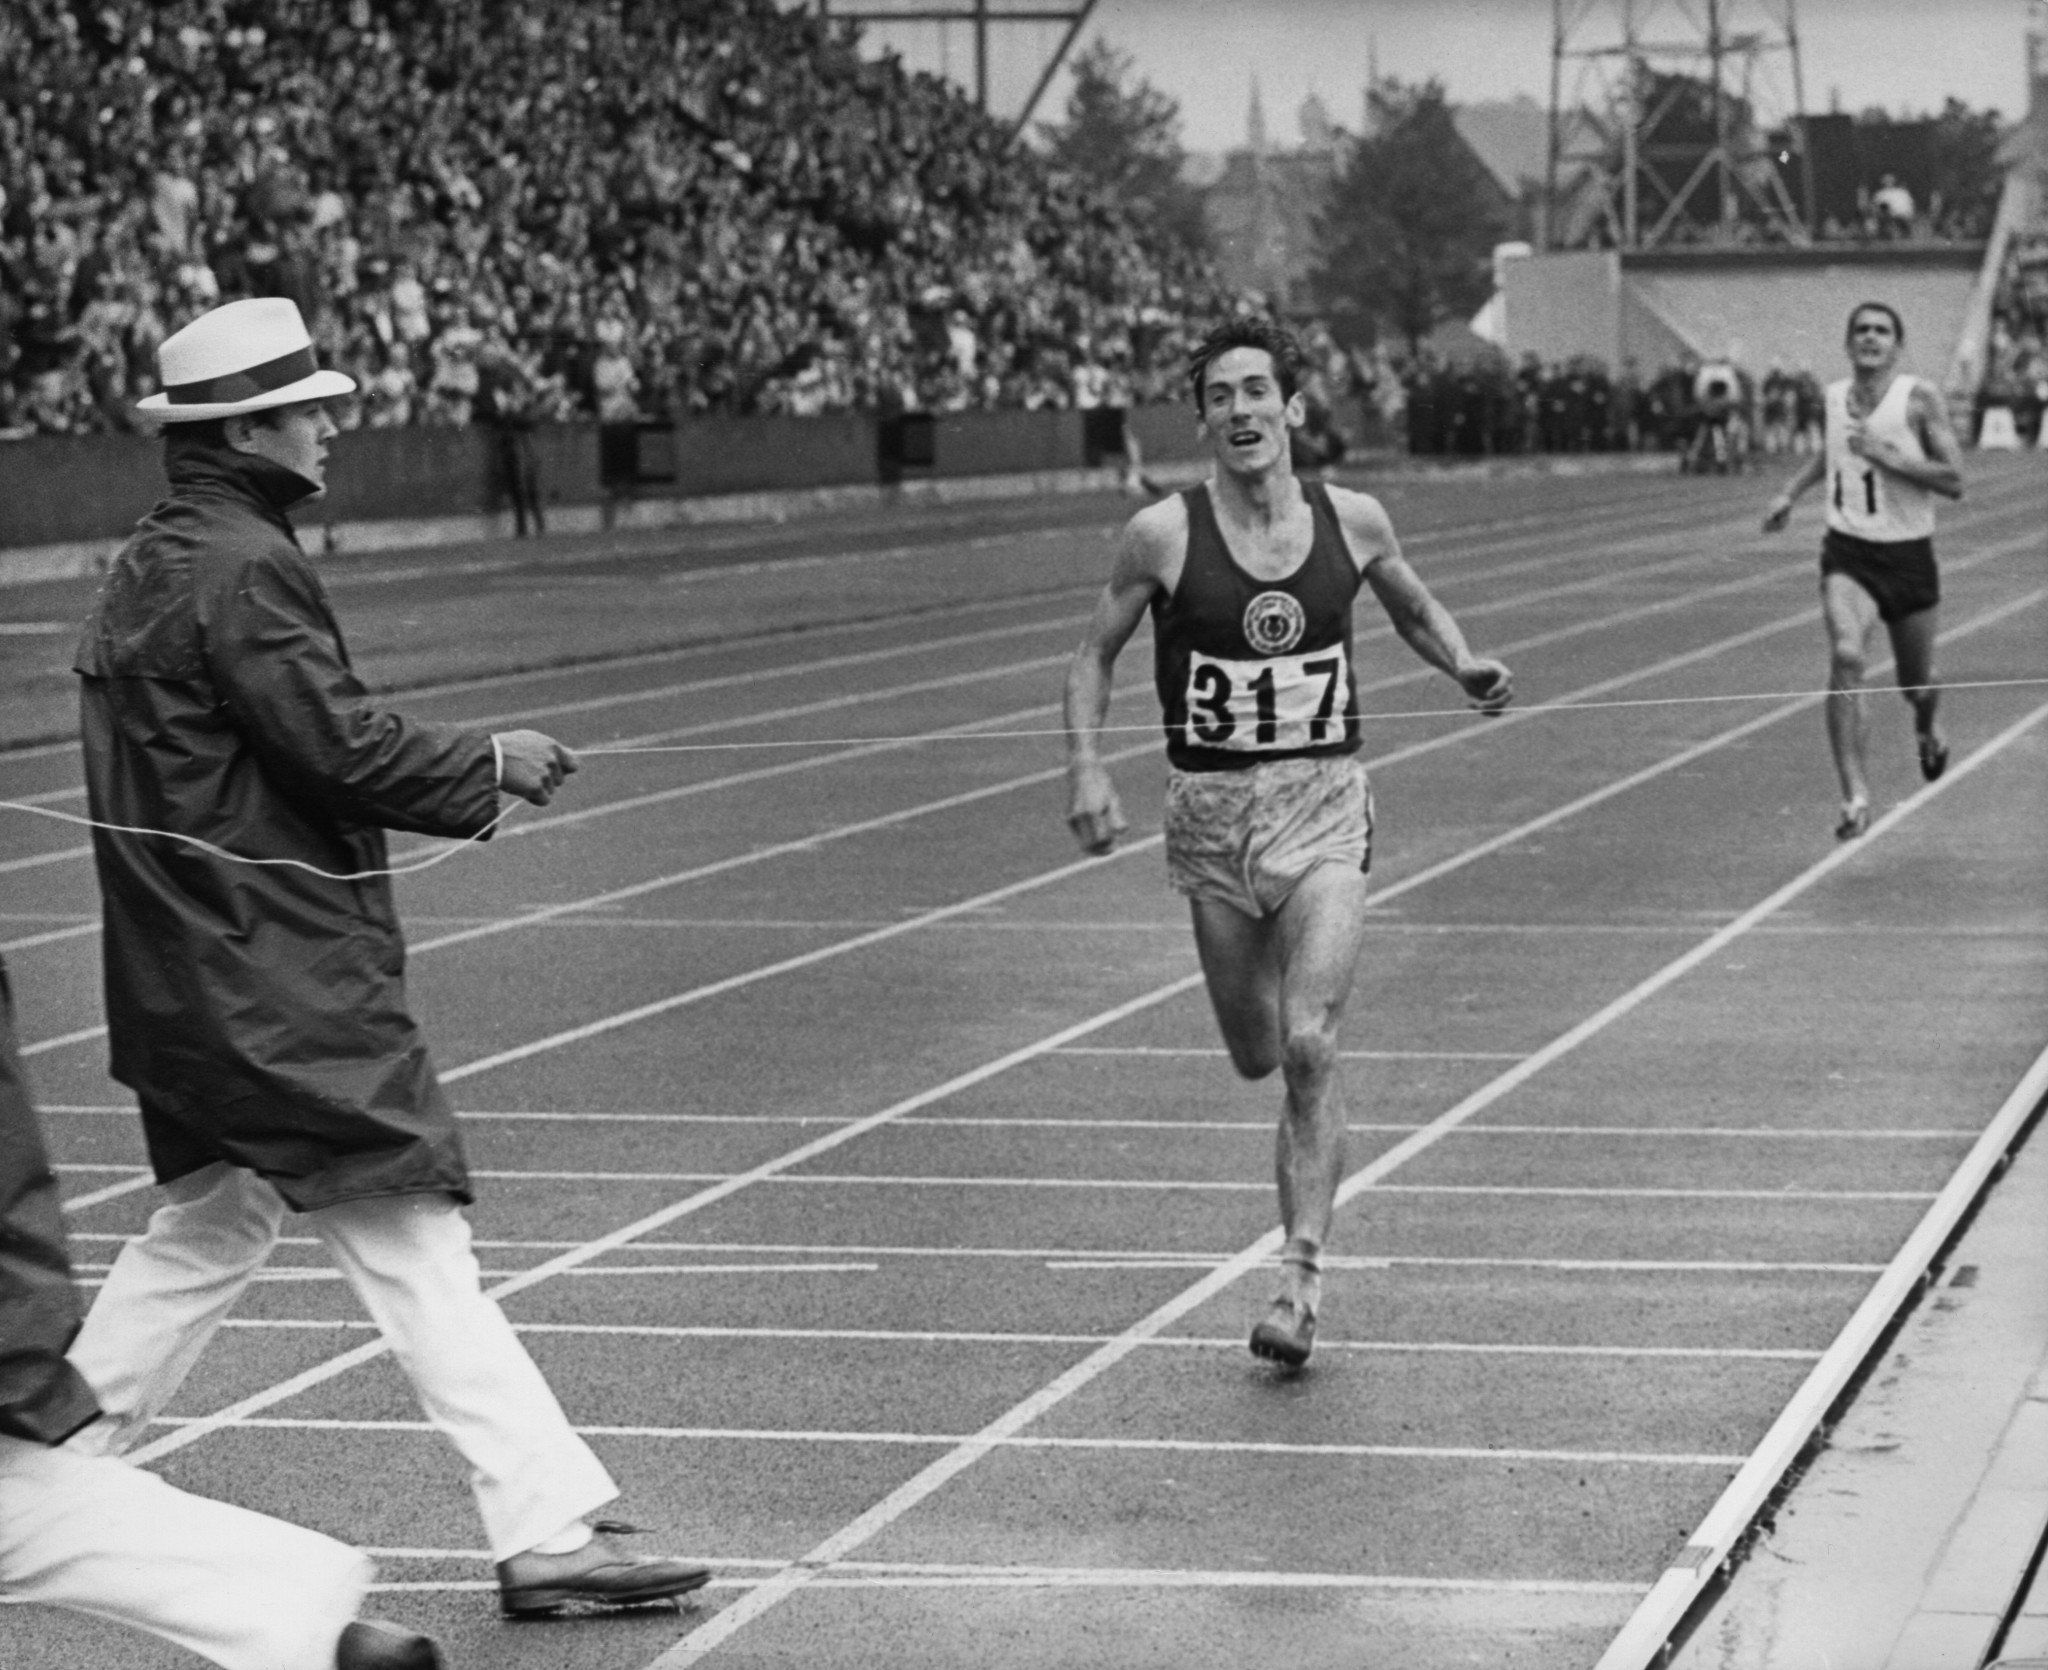 Lachie Stewart wins the 10,000 metres at Edinburgh 1970 ©Getty Images